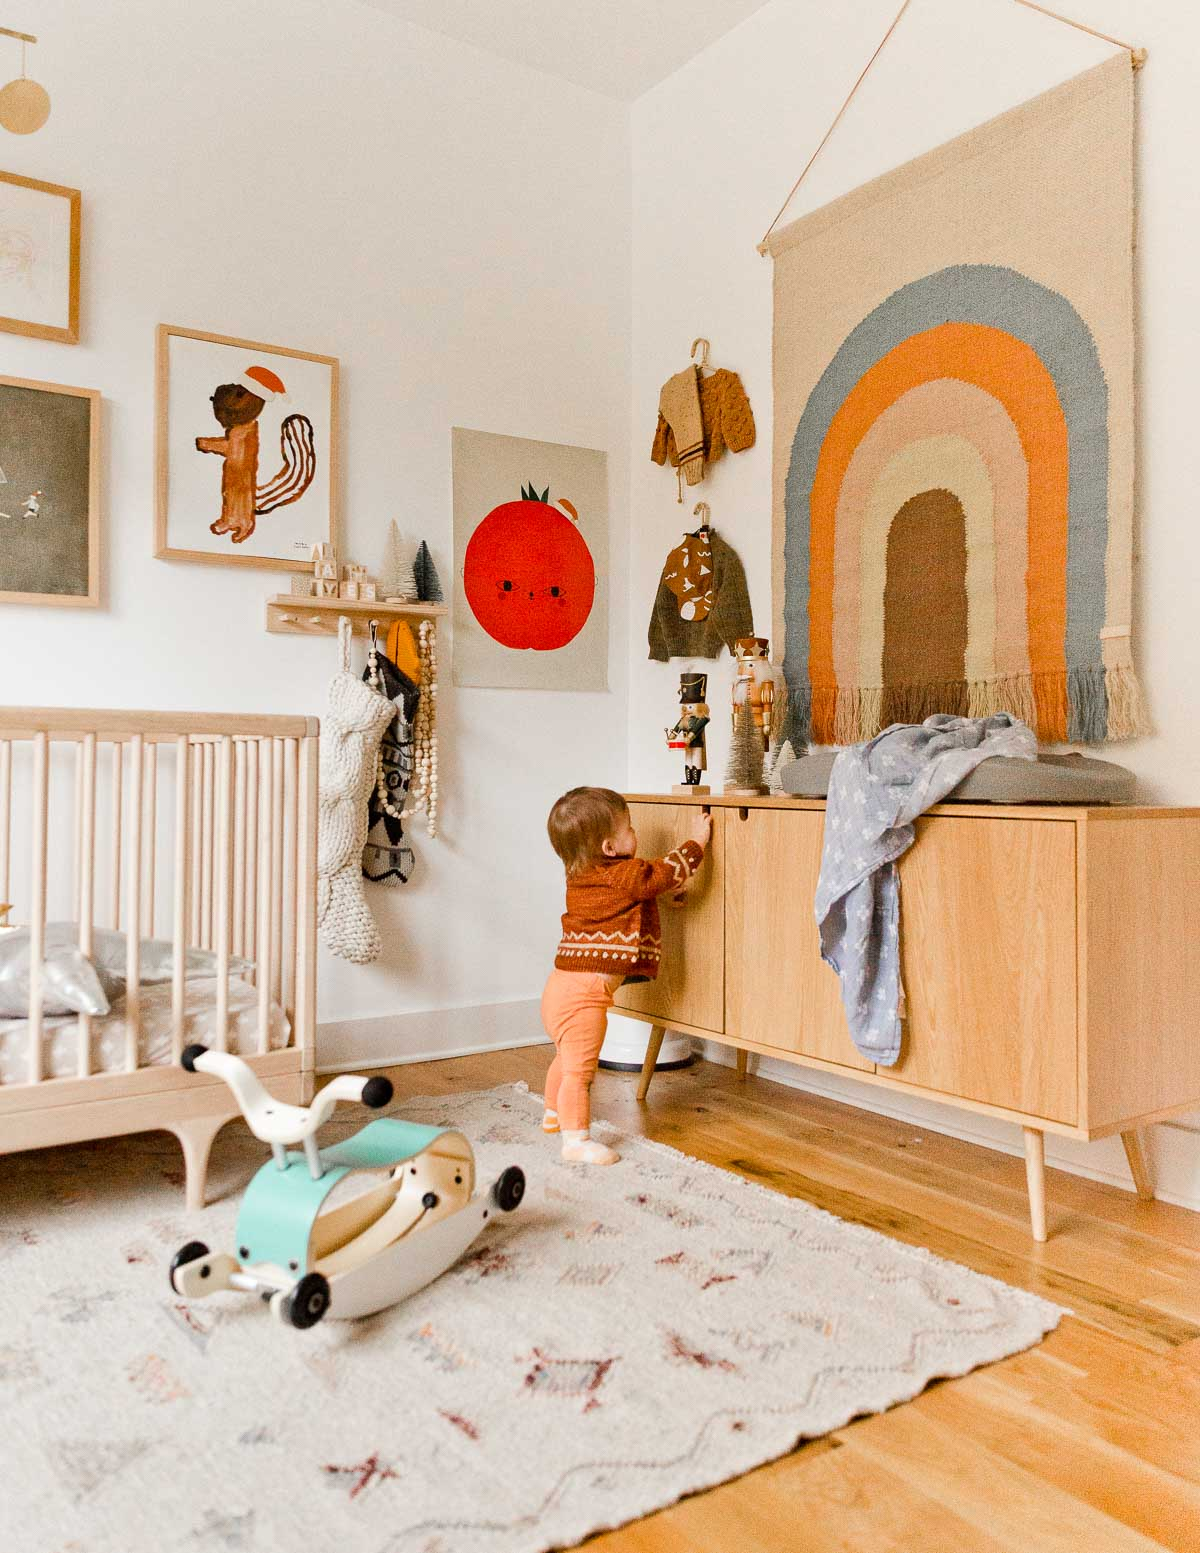 A gender-neutral nursery / kid's room gets an upgrade for the holidays (and beyond). Look at that rainbow wall hanging!